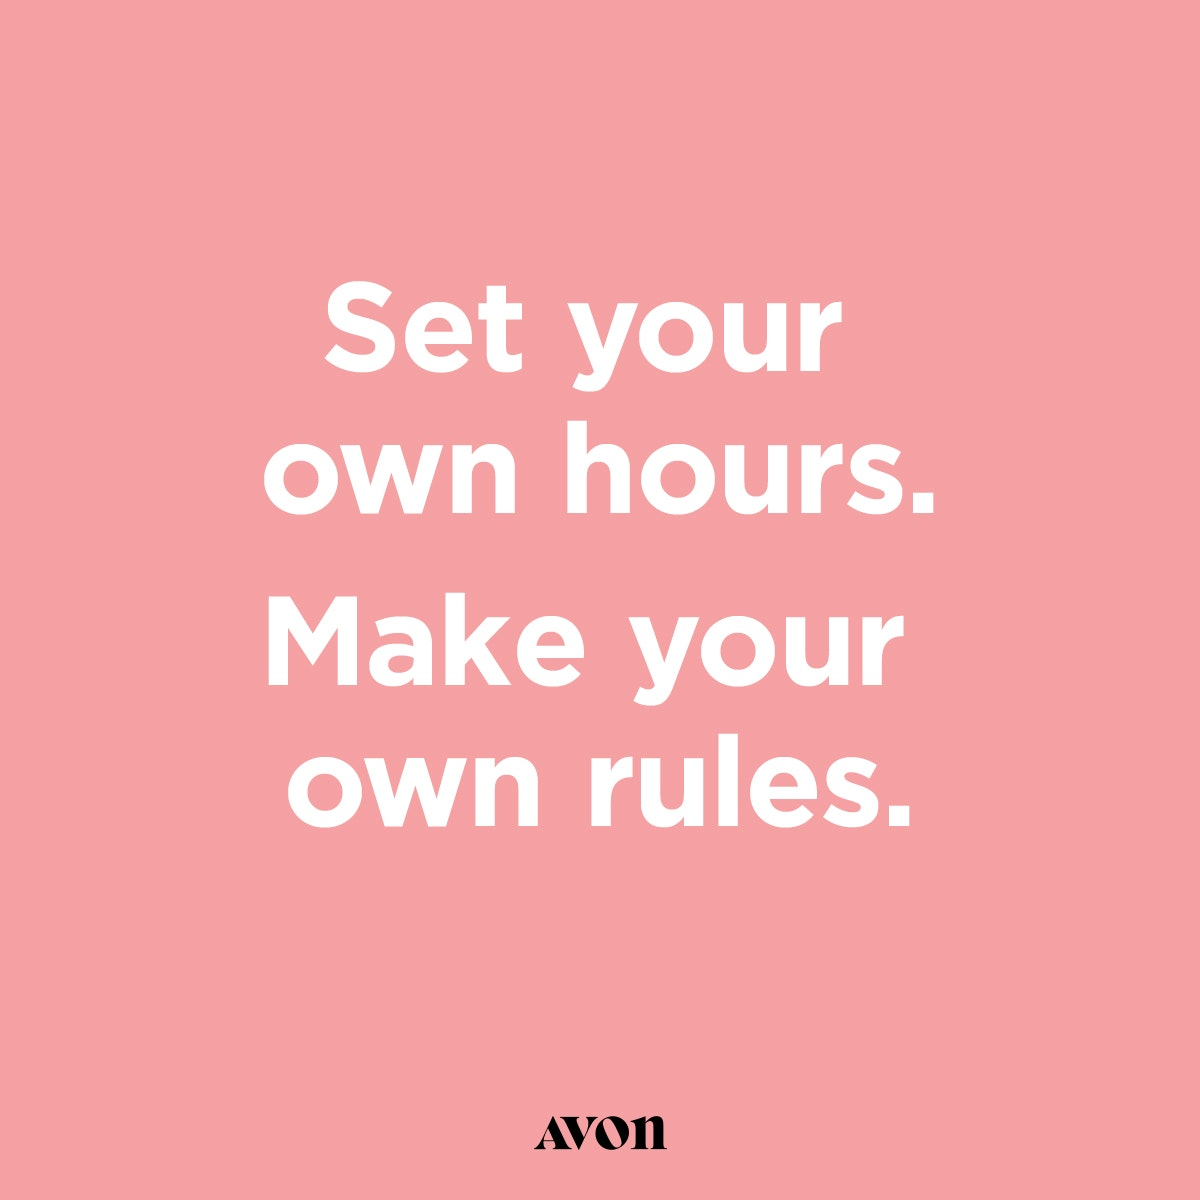 Set your own hours.  Make your own rules.  Join the Avon Nation! https://www.youravon.com/home/join?siteid=avon&p=BaRTop&c=BaRTop&s=BaRTop&shopURL=mybeauty